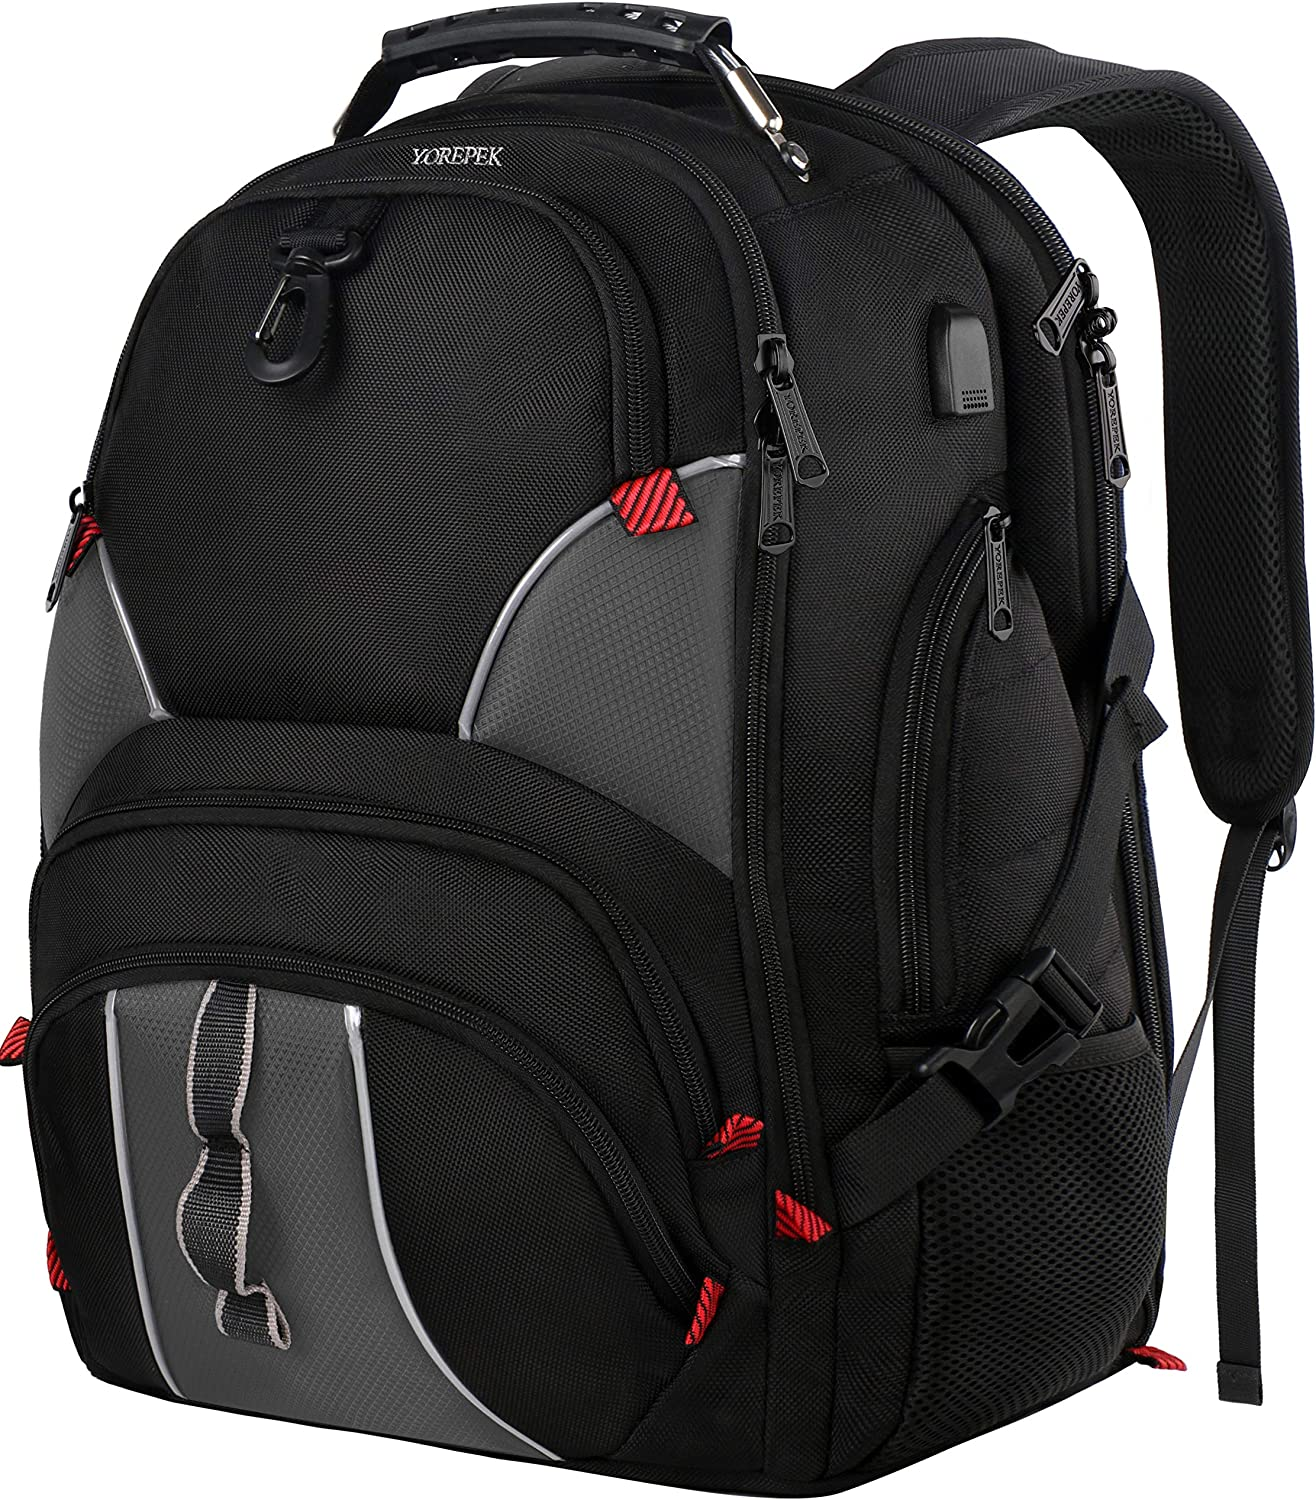 Large School Backpack,College Backpack for Men with USB Charging Port